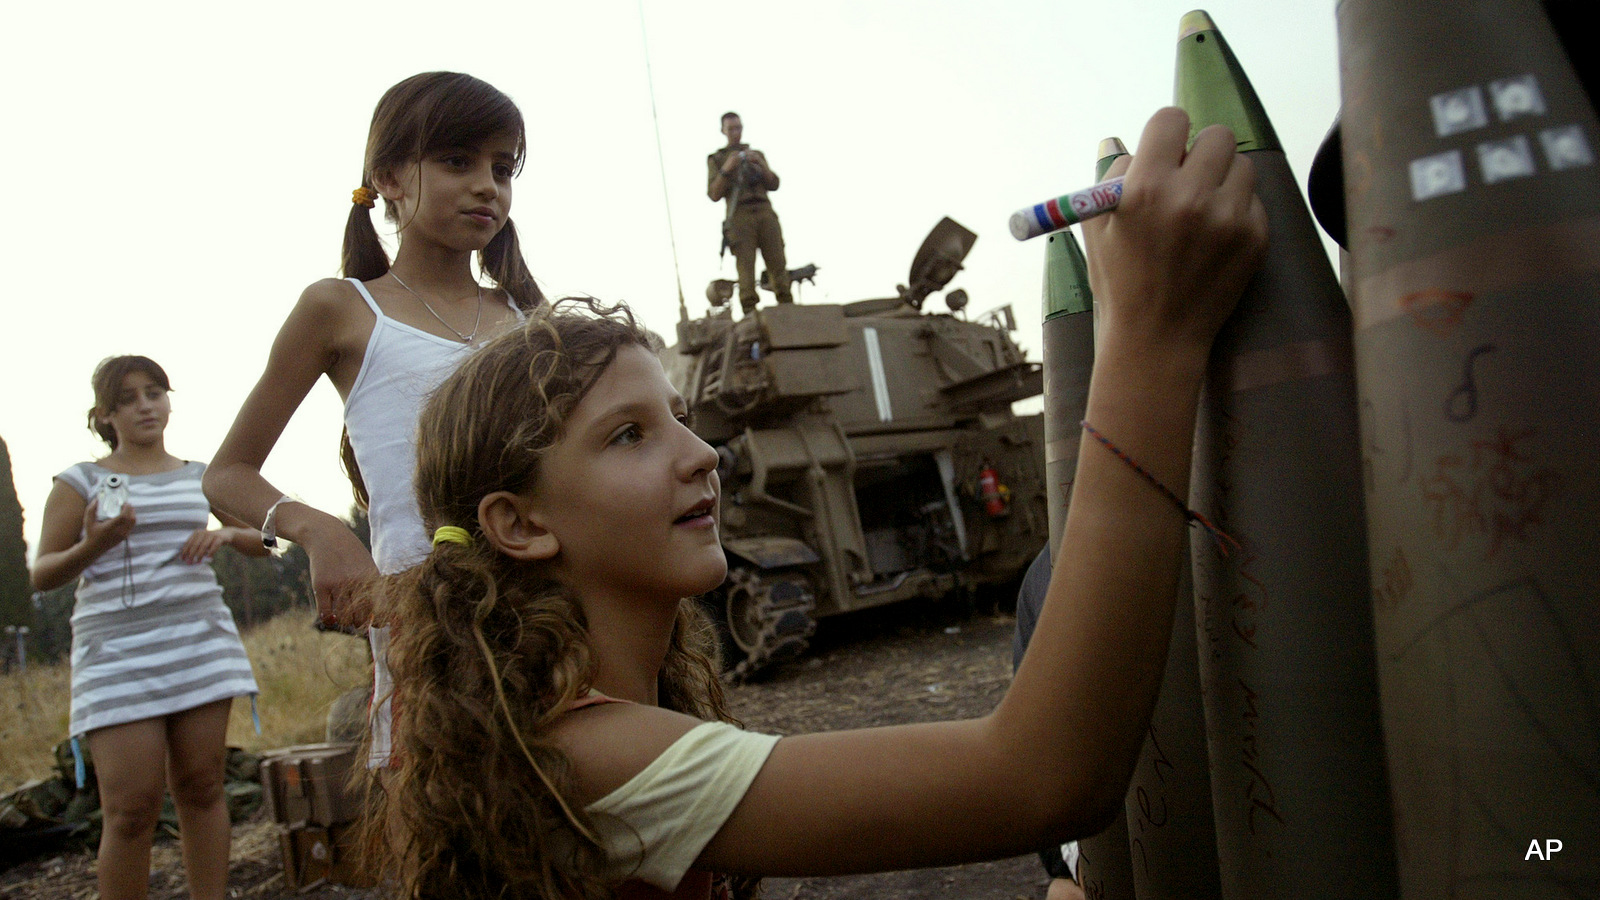 Israeli girls write messages on a bombs at a heavy artillery position near Kiryat Shmona, in northern Israel, next to the Lebanese border, Monday, July 17, 2006. (AP Photo/Sebastian Scheiner)